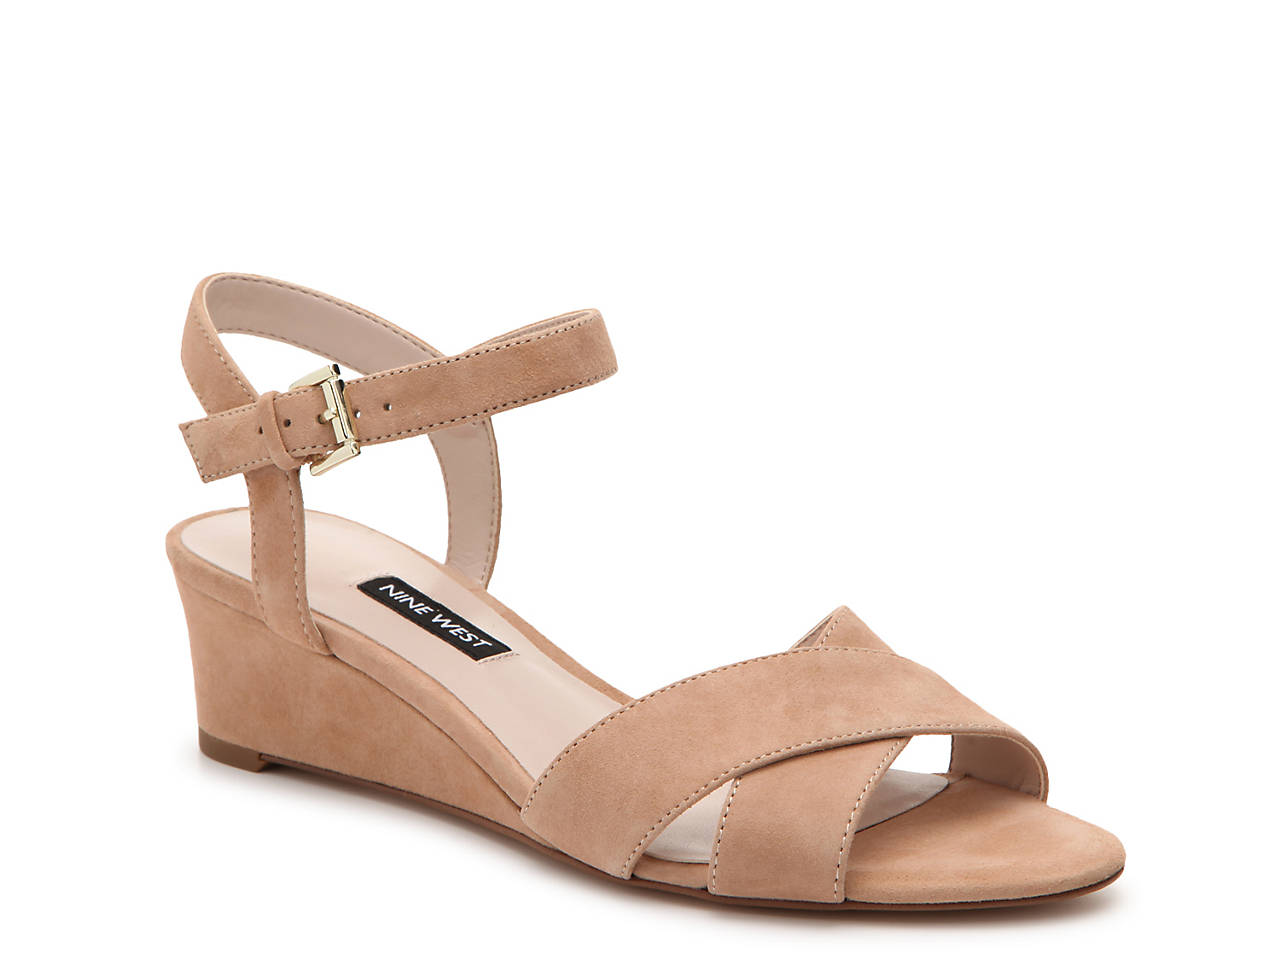 Nine West Laglade Wedge Sandals Women's Shoes QS8xXy